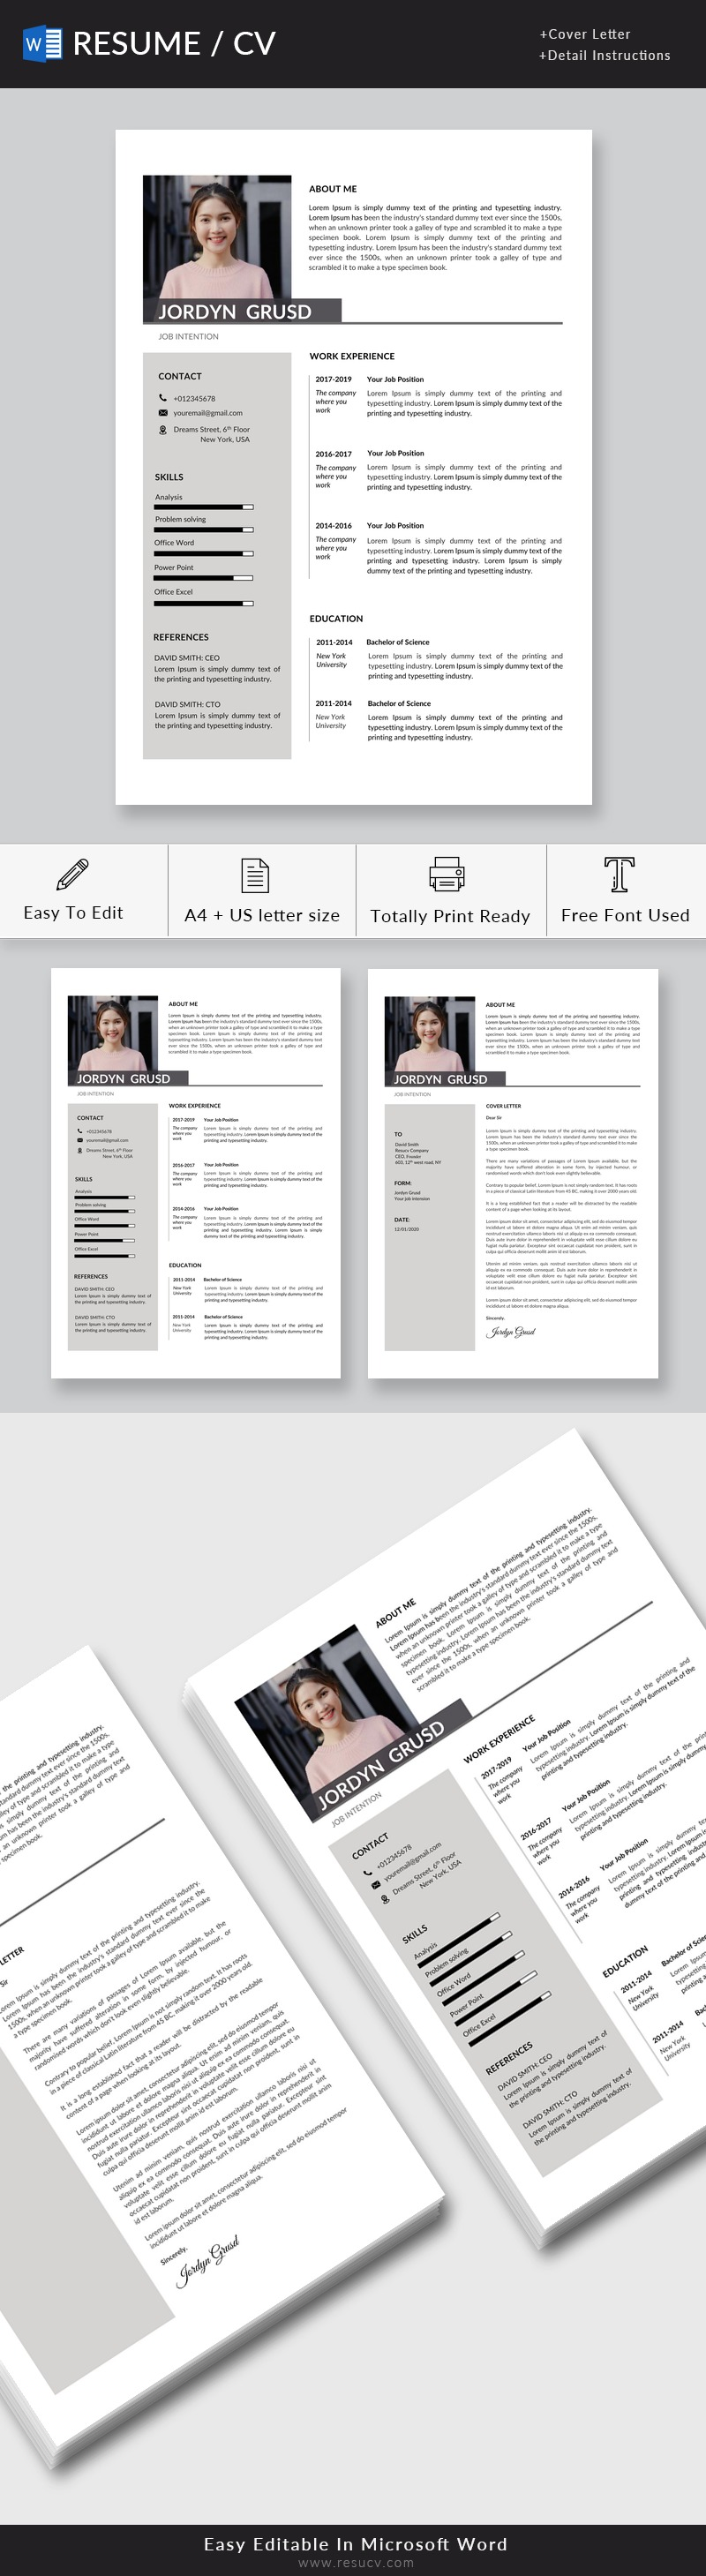 Professional Resume | Minimal Resume Template Word, Cv Template